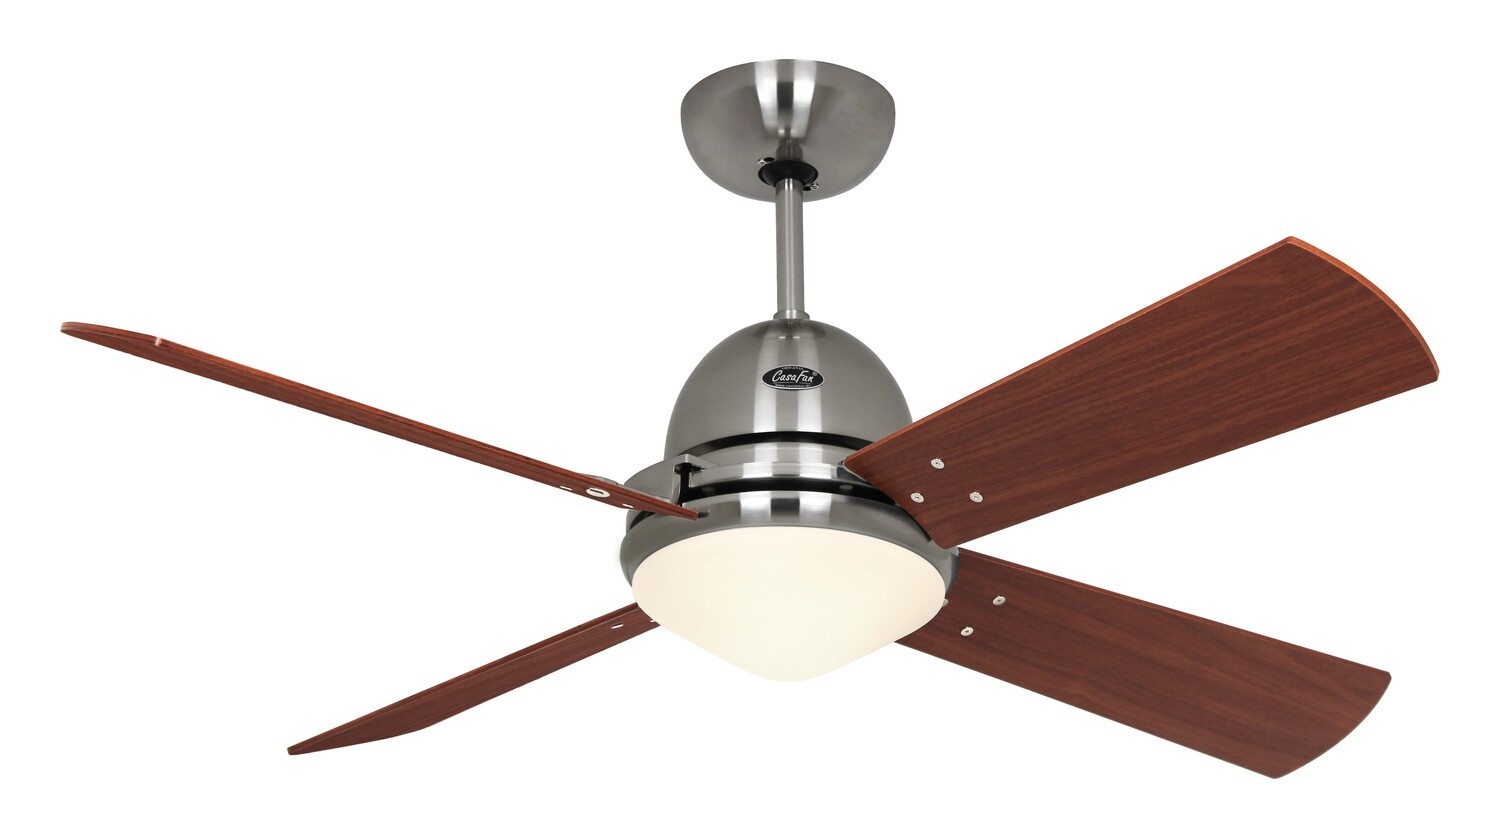 LIBECCIO ceiling fan by CASAFAN Ø120/142 with light kit and remote control included